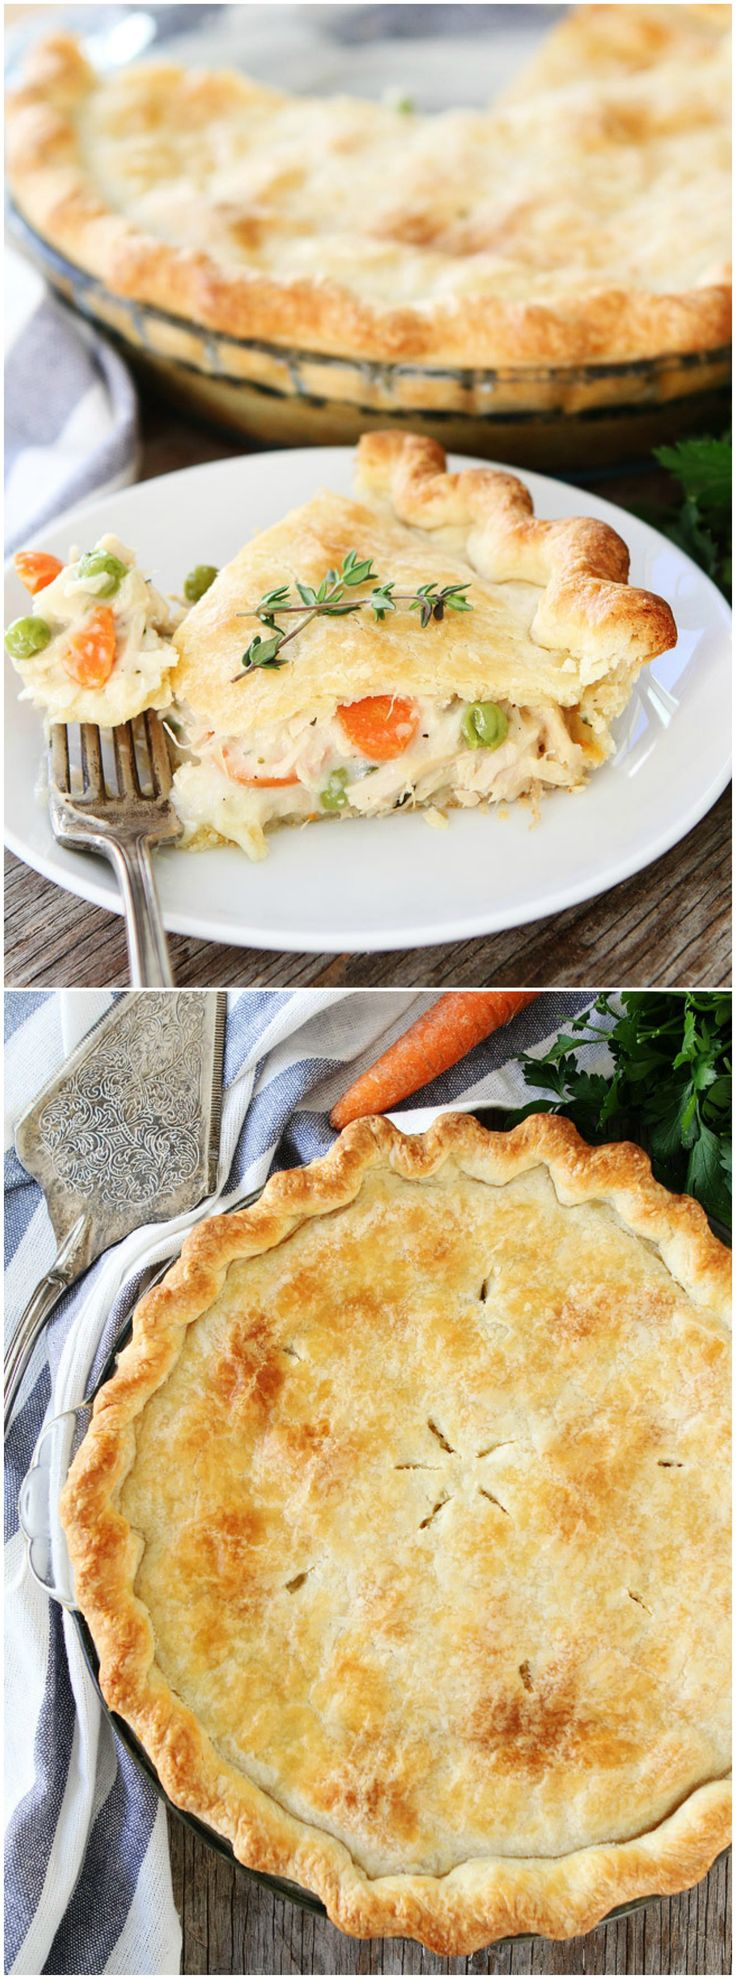 Chicken Pot Pie Recipe on twopeasandtheirpod.com This classic homemade chicken pot pie is the ultimate comfort food and it freezes well too!: